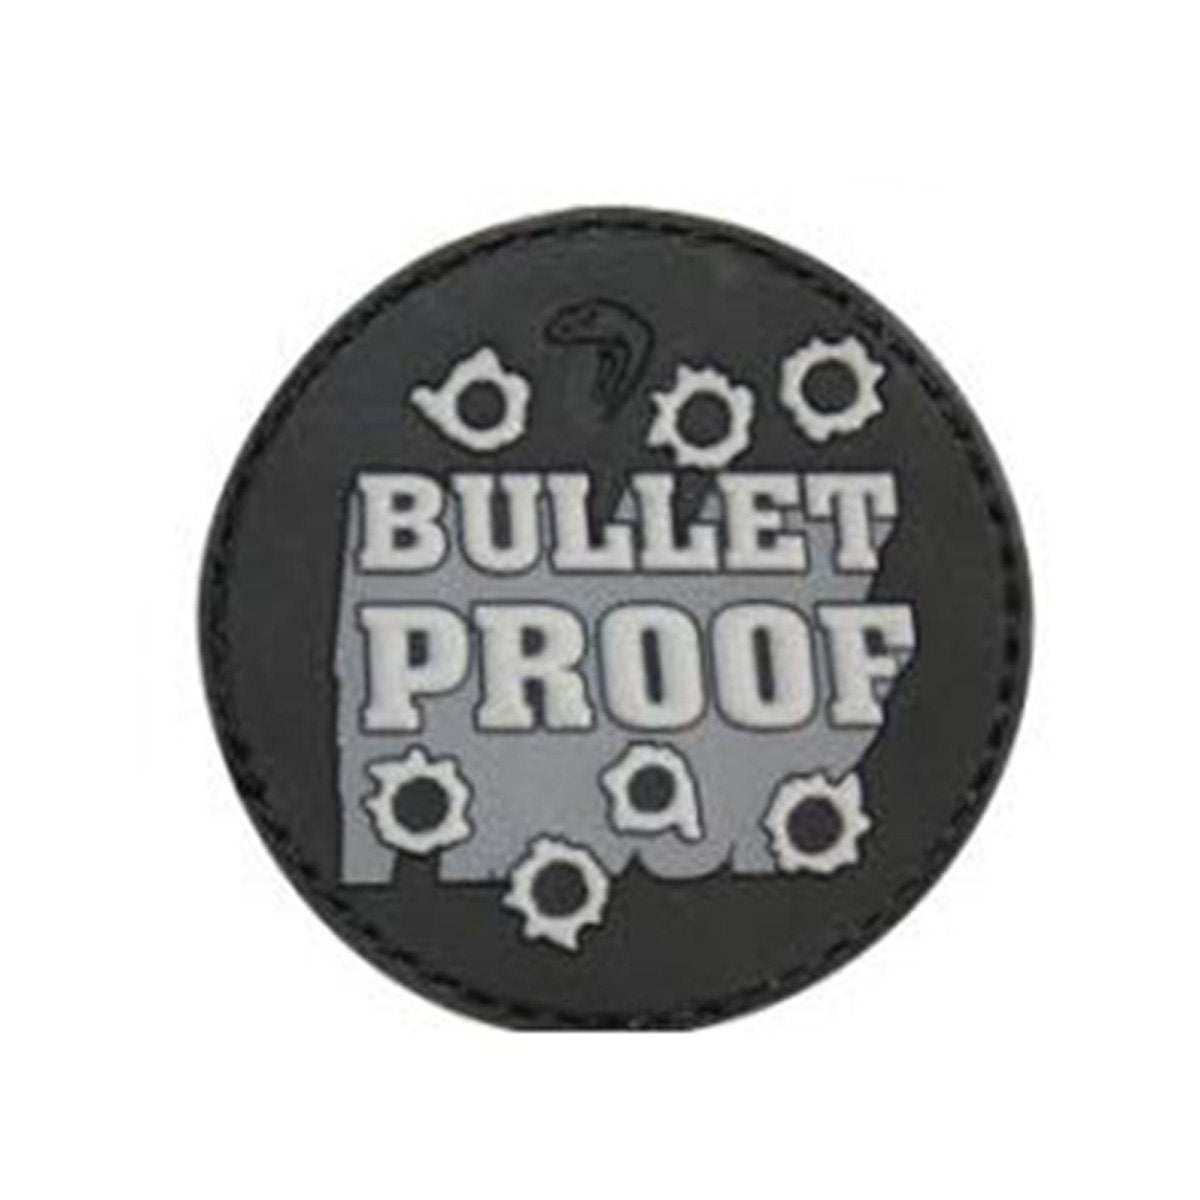 Viper Bullet Proof Patch | UKMCPro